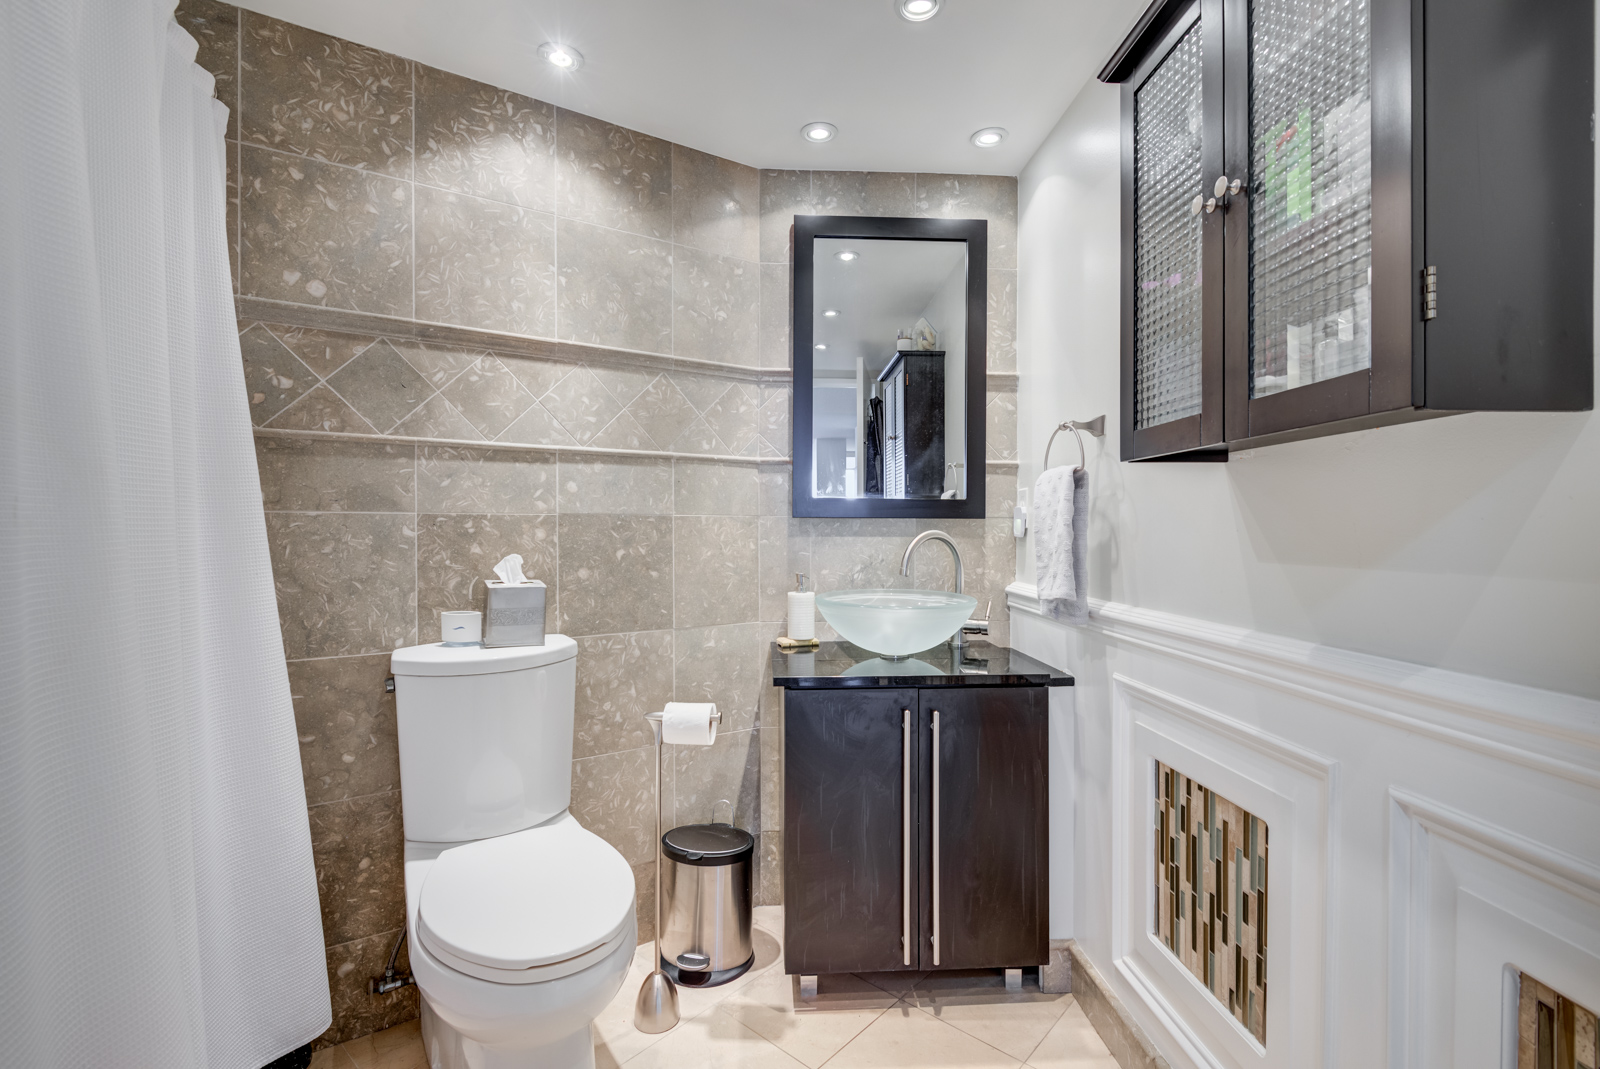 Contemporary bathroom with ceramic tiles, brown vanity, medicine cabinet, and vessel sink bowl of glass.